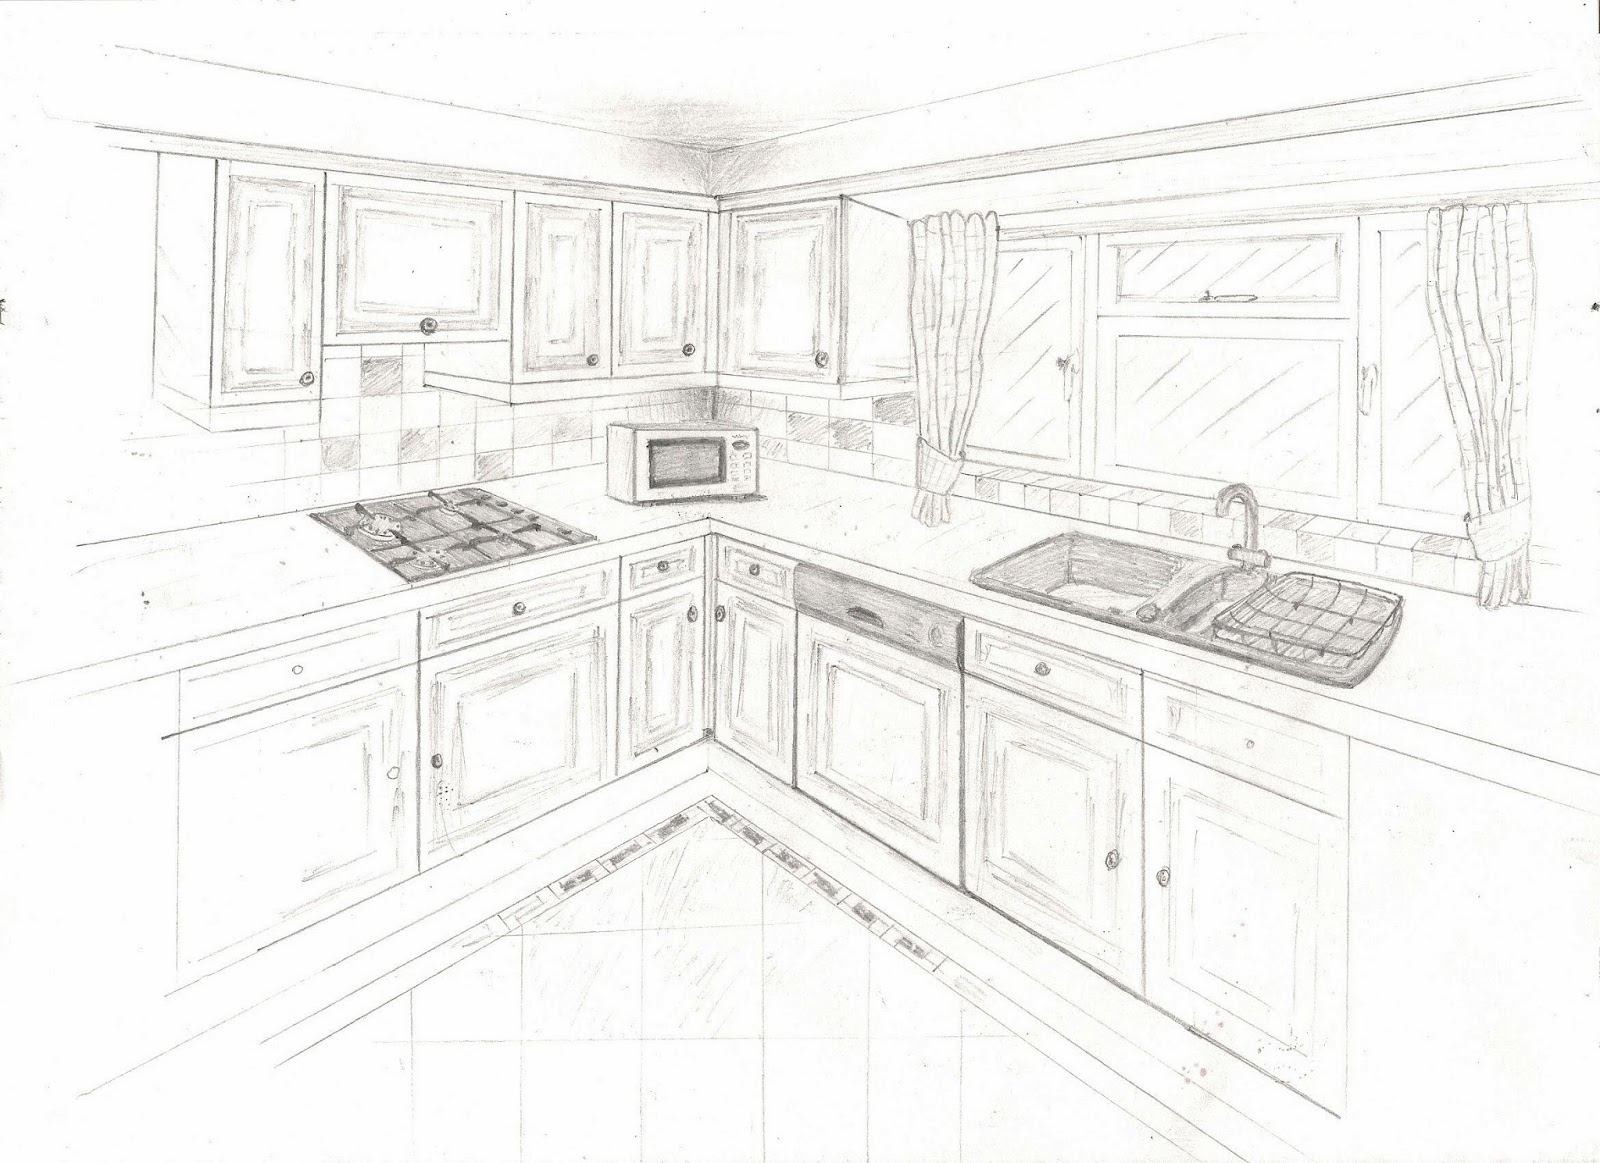 A two point perspective interior sketch of my home kitchen